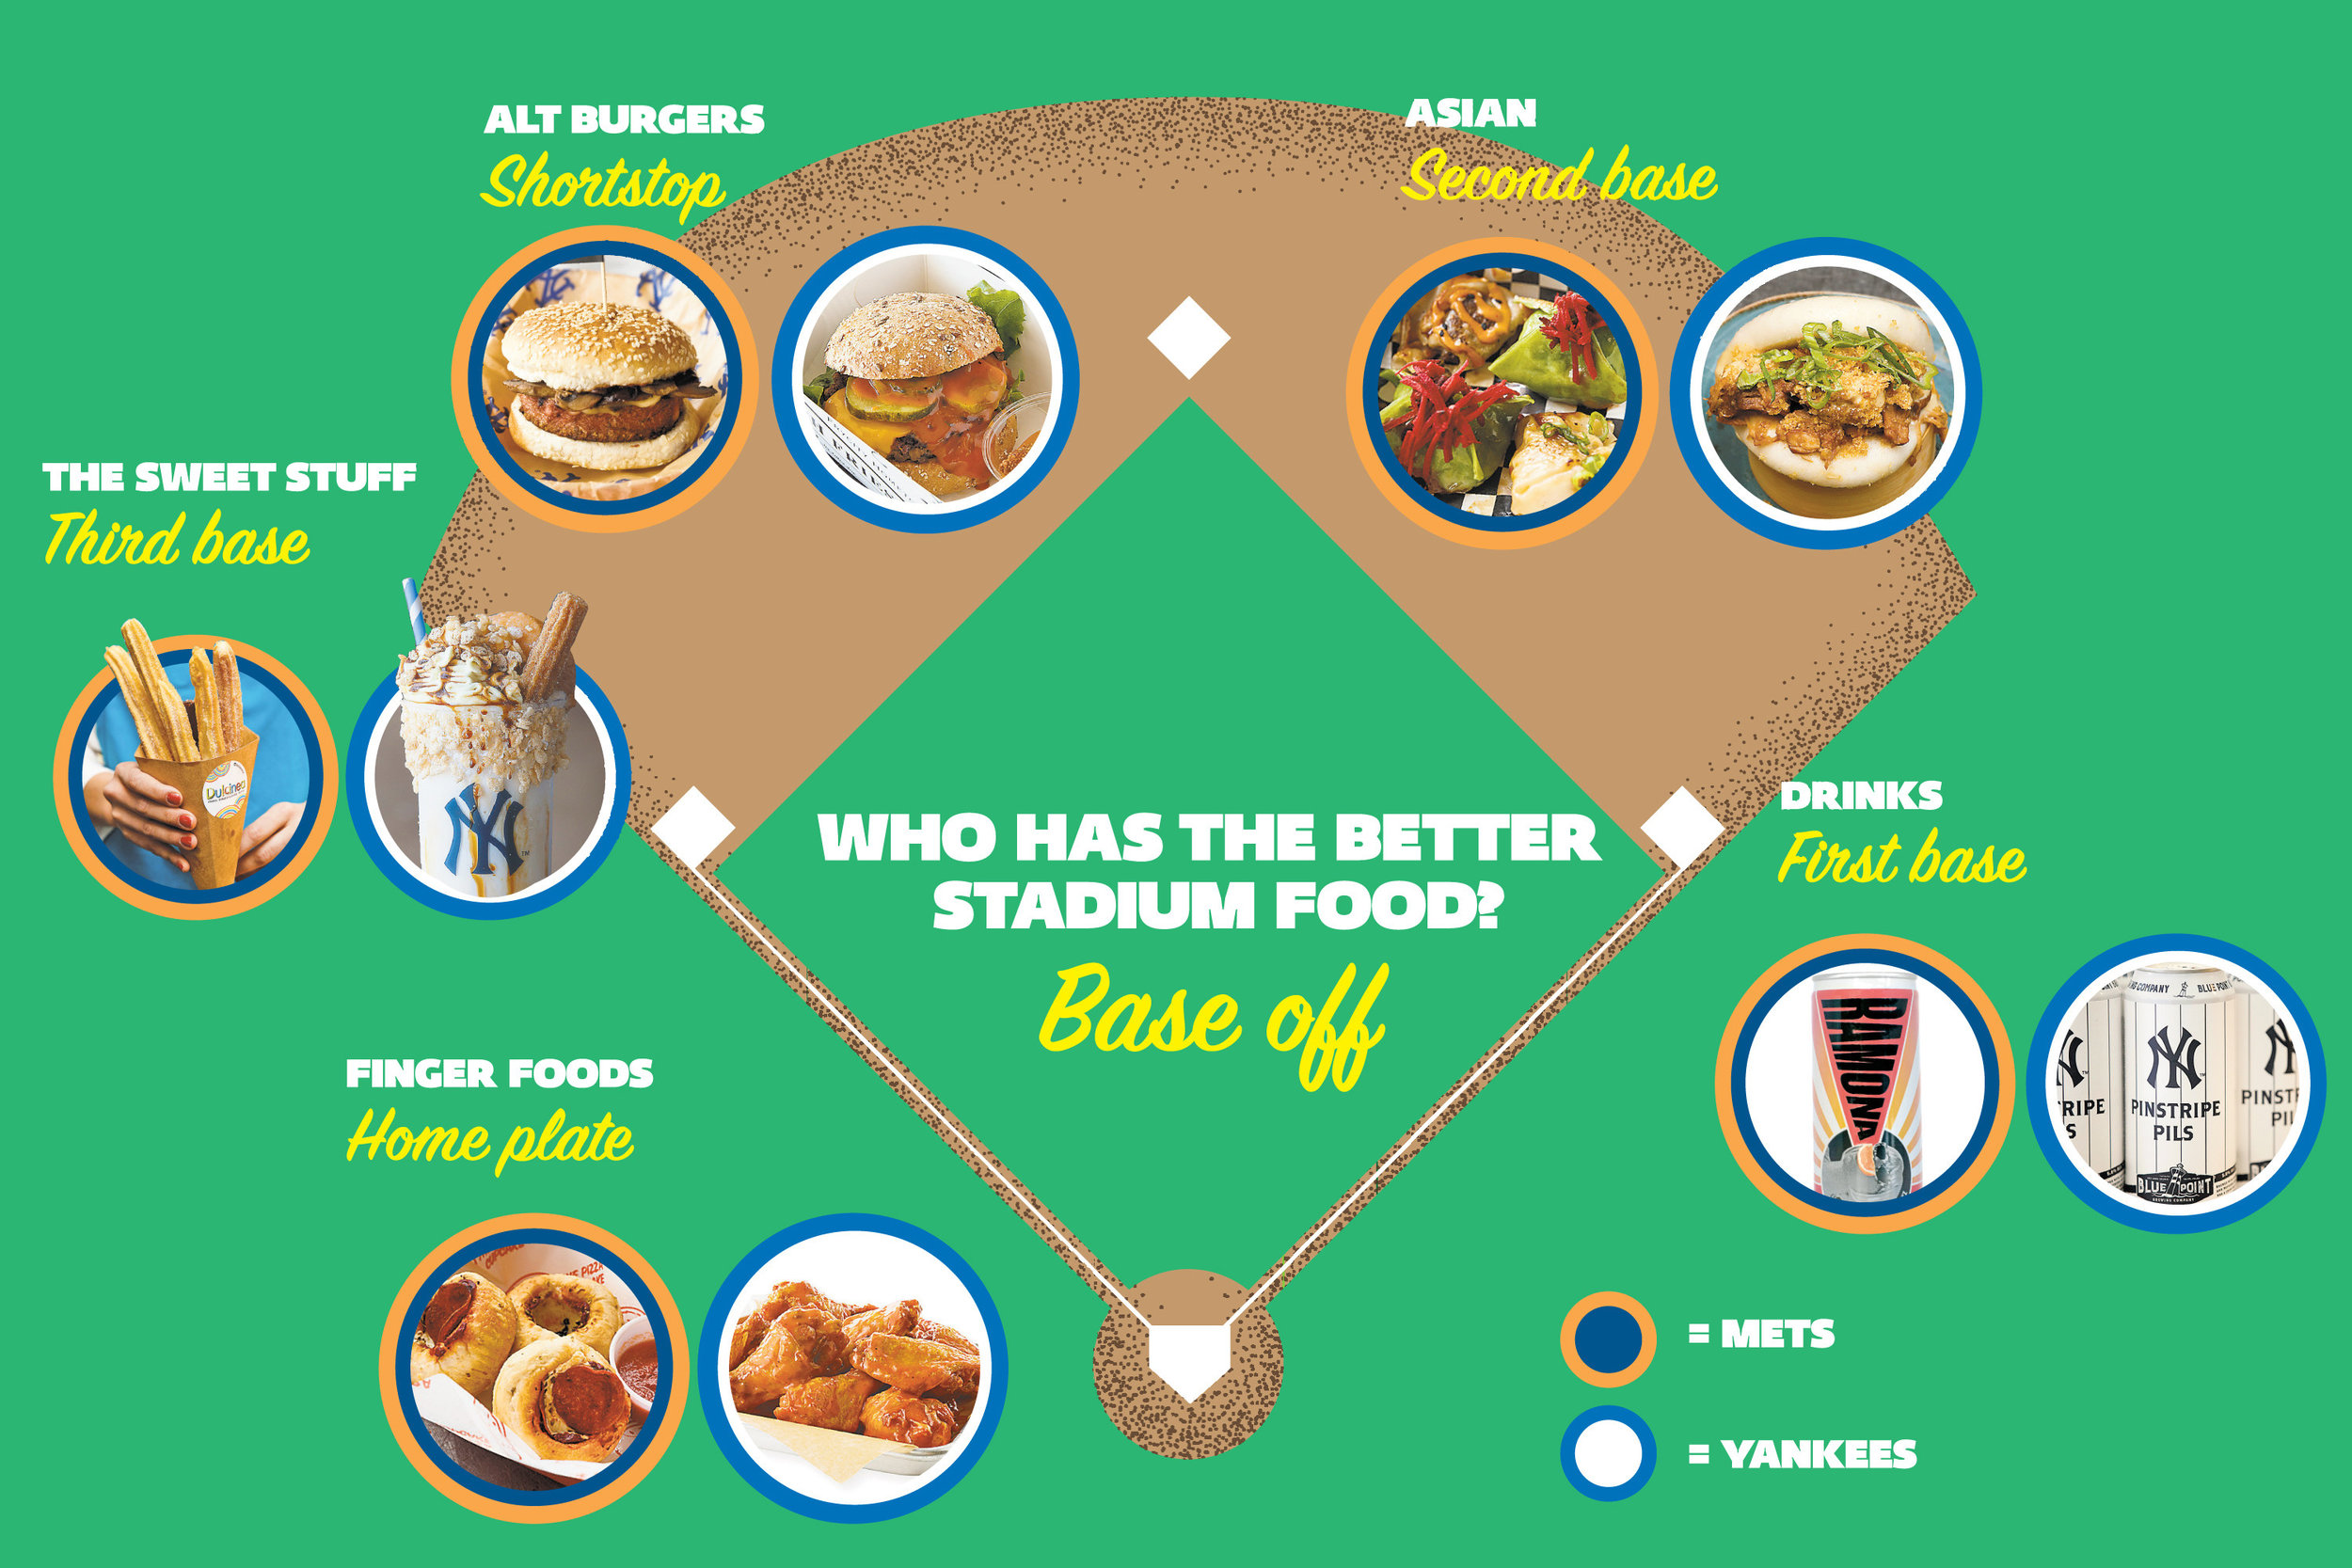 NEW YORK POST  Yankees vs. Mets: Whose stadium grub comes out on top?